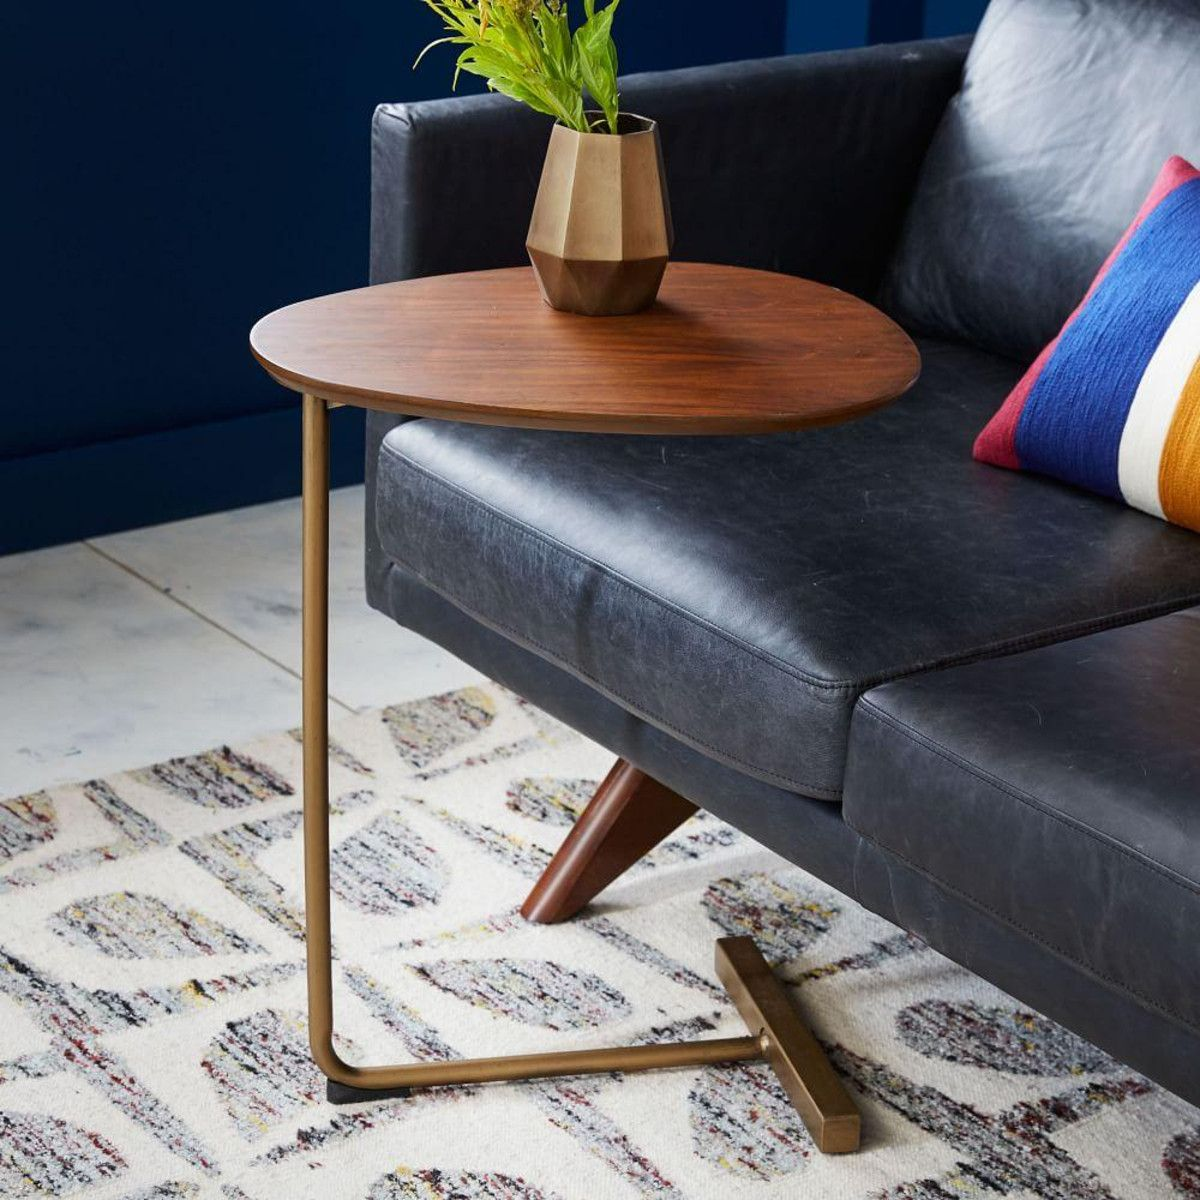 charley c side table furniture table small coffee table table rh pinterest com